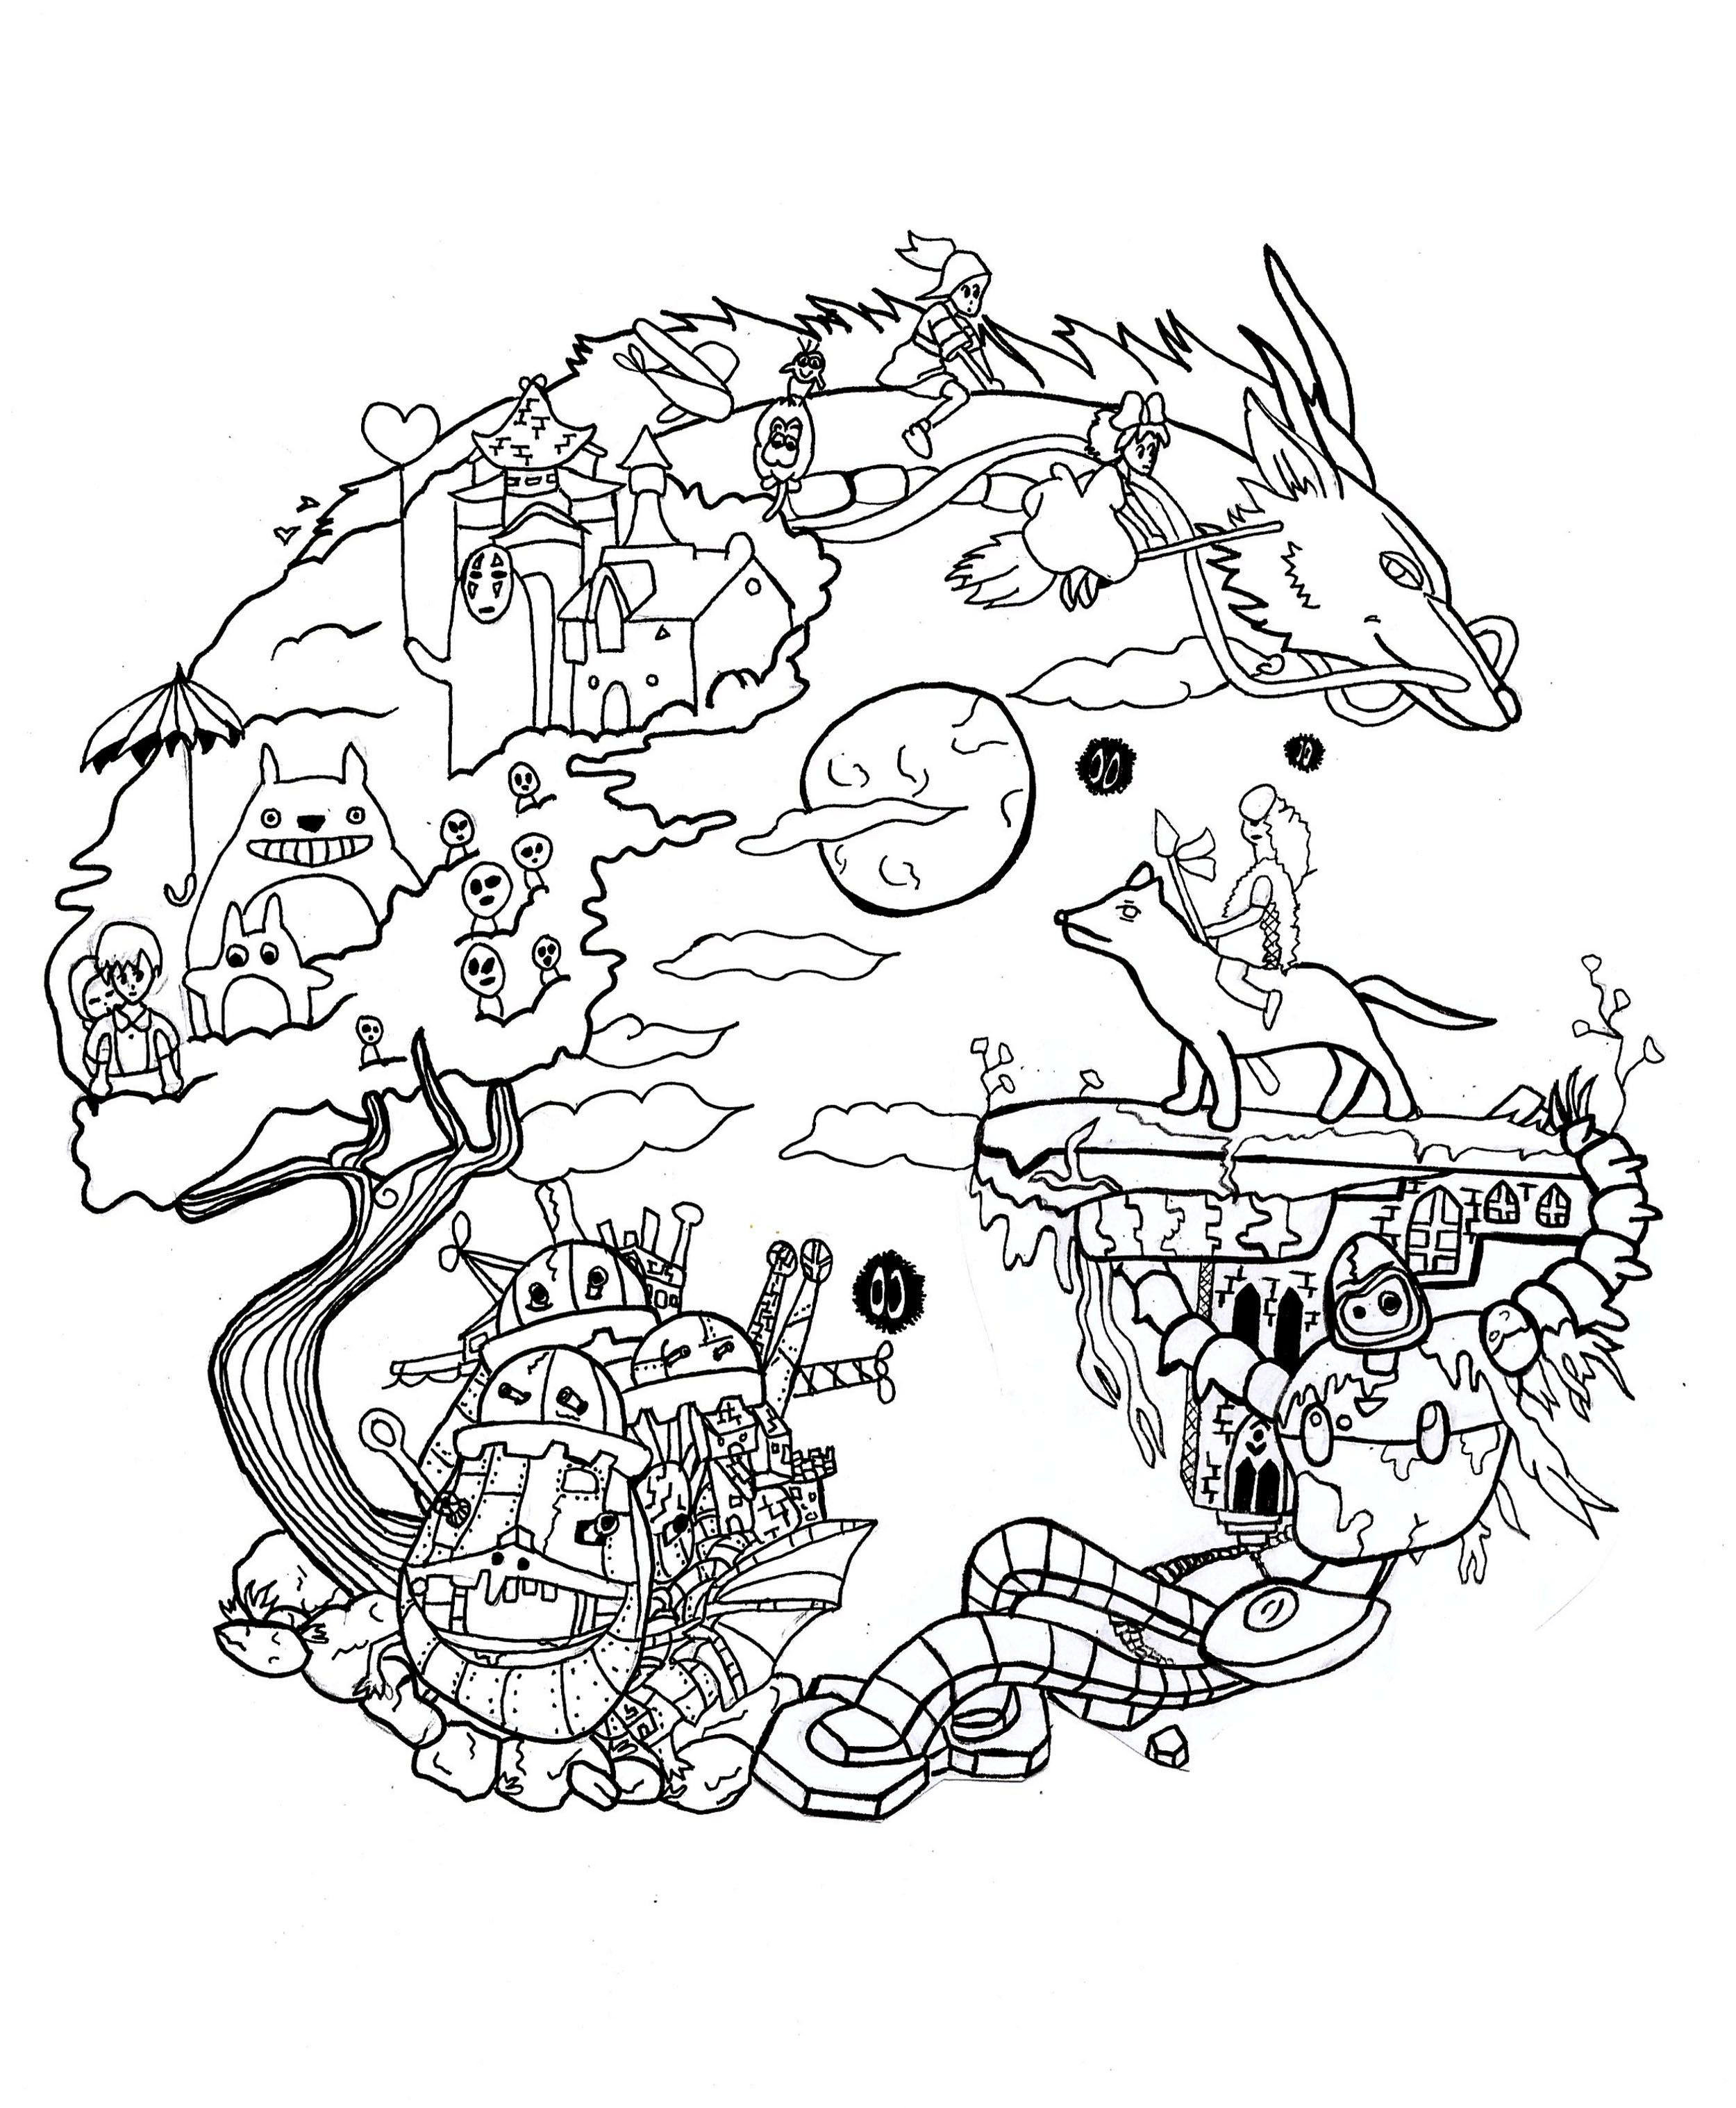 - Studio Ghibli - Manga / Anime Coloring Pages For Adults - Just